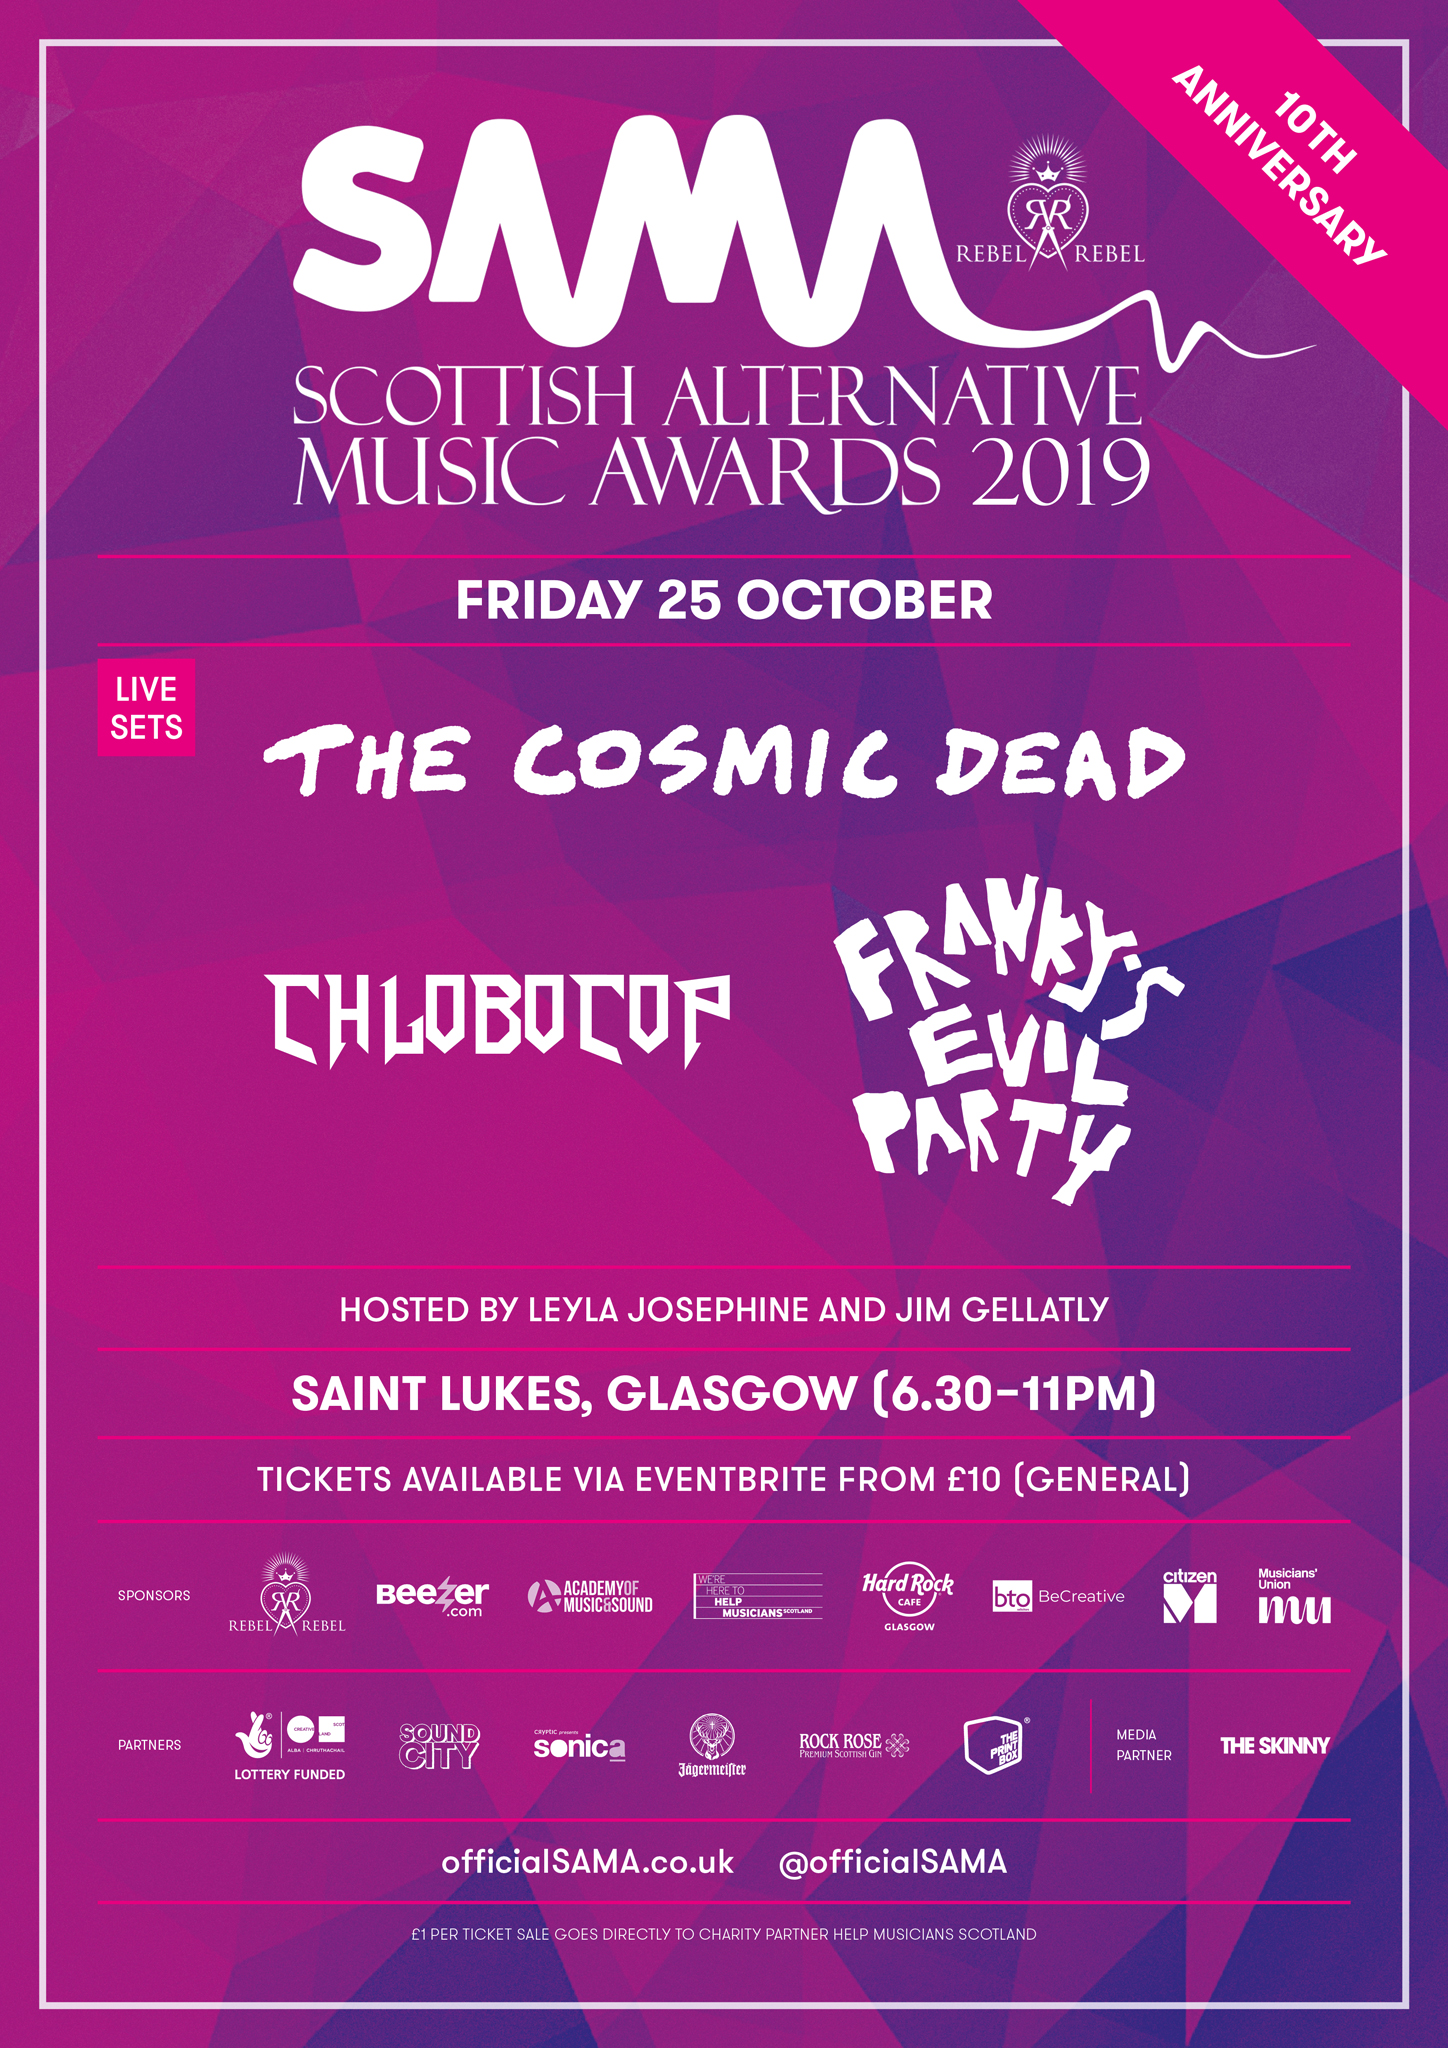 Please note: Chlobocop will no longer be performing at the event.  A limited amount of tickets are available for Scottish Alternative Music Awards via Eventbrite. Teaming up with Scotland's leading music charity Help Musicians Scotland, £1 from each will go directly to the charity and invested back into supporting Scottish musicians.